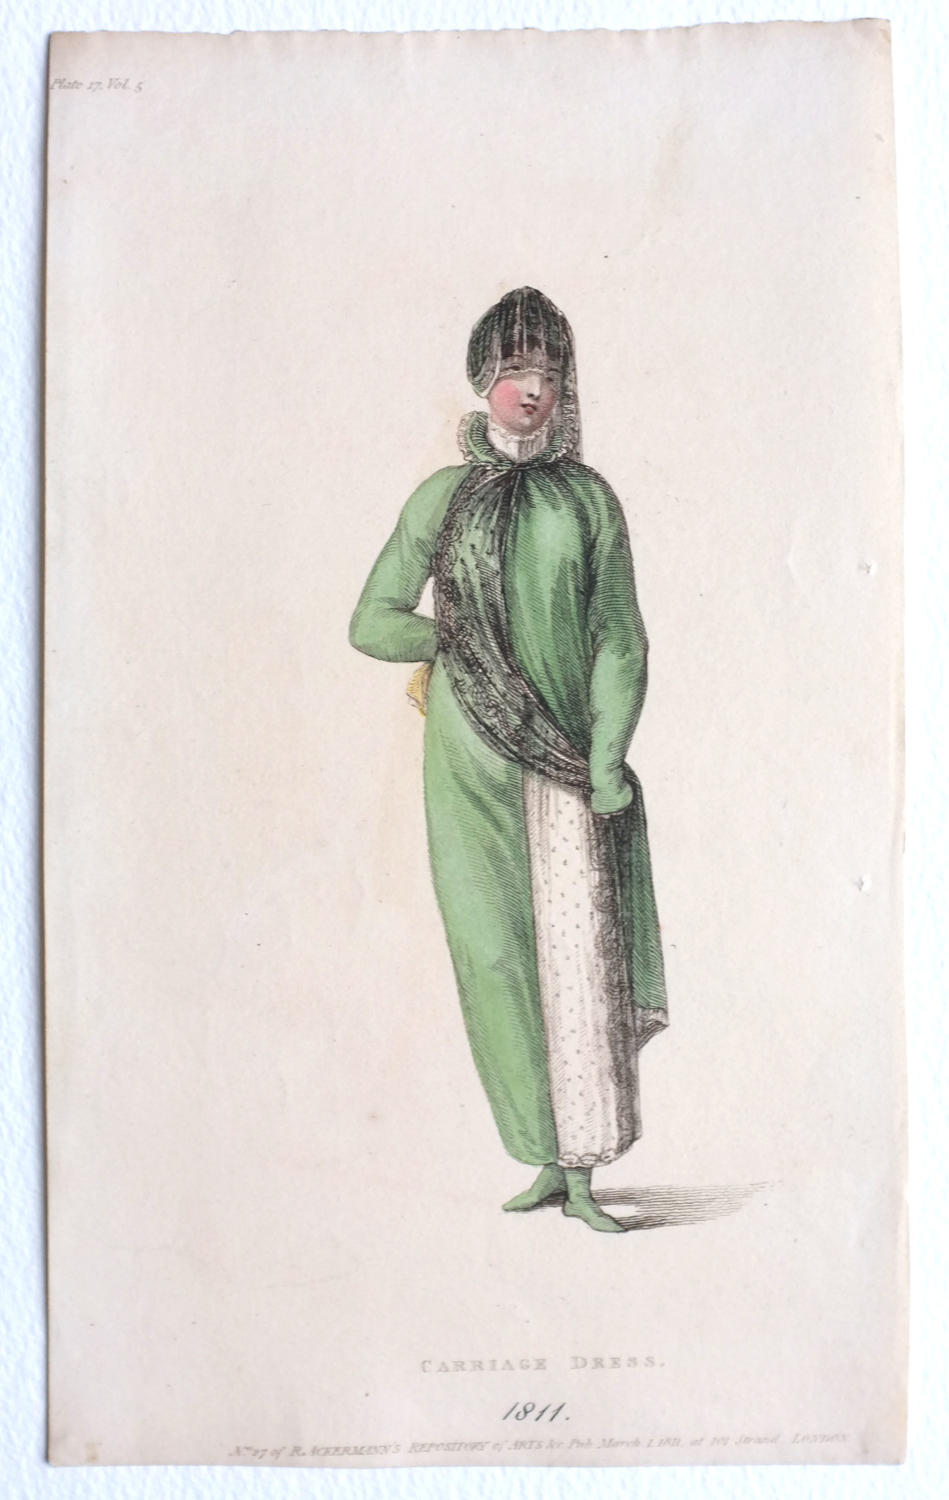 Ackermann's Hand Coloured Engraving - 1811